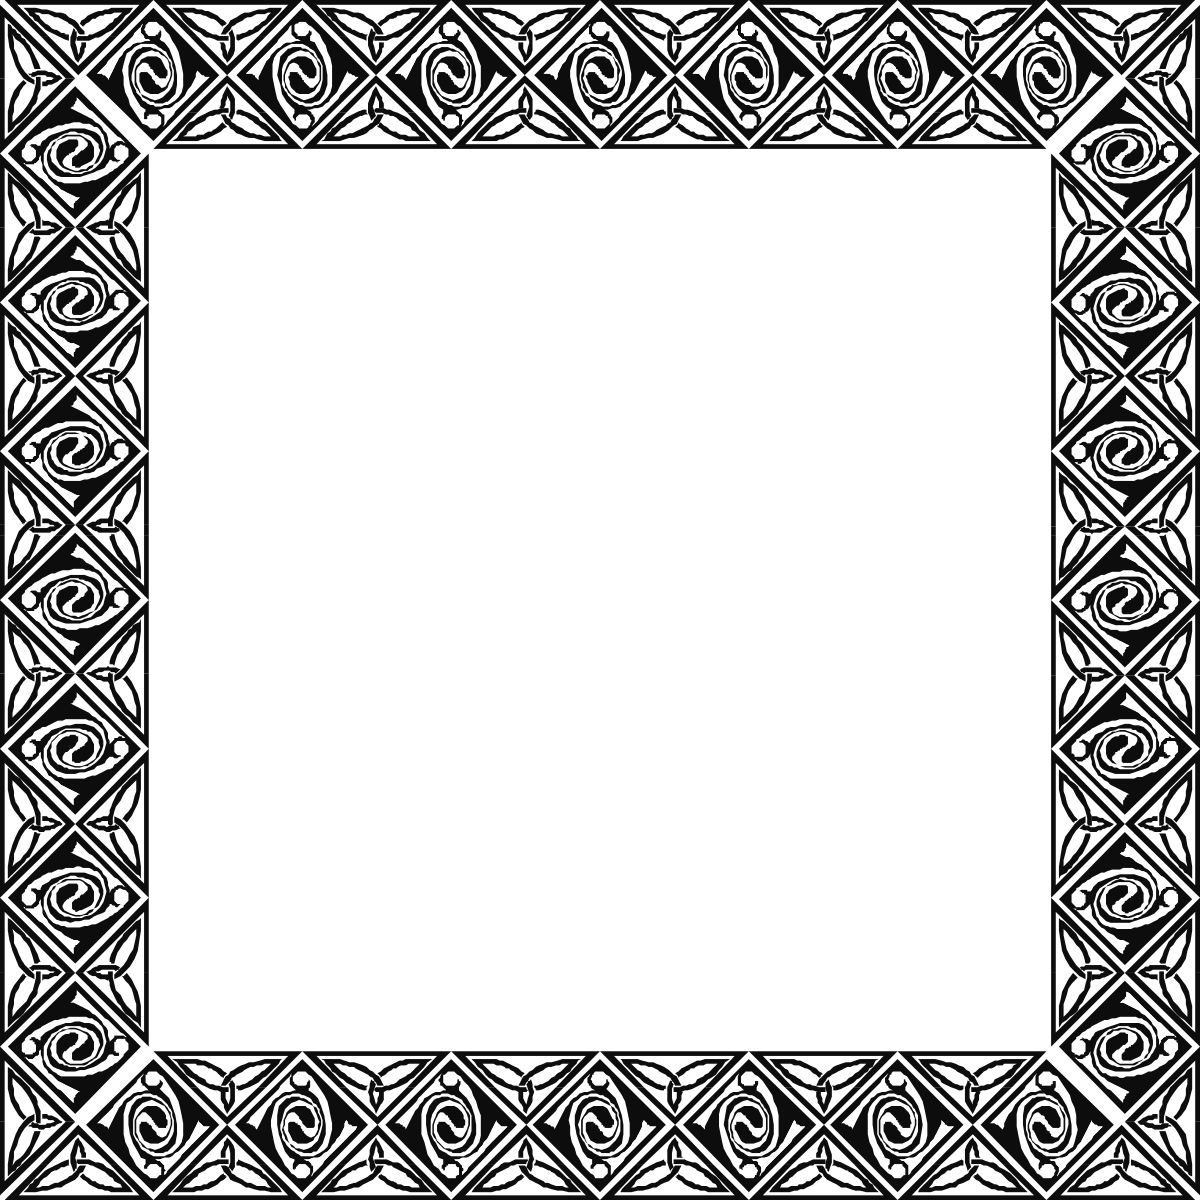 Vector Decoration Ornate Pattern Abstract Floral Pattern Illustration Frame Old-fashioned Indigenous Culture Backgrounds Design Element Retro Styled Seamless Symbol Ethnic Islam Design Textile Invitation Paper Greeting Card Picture Frame Computer Graphic Elegance Flower Banner Wallpaper Pattern Black Color Decor Curve Geometric Shape East Asian Culture Cultures Part Of Art Construction Frame Collection Style Arabic Style Outline Mandala Placard Henna Tattoo Drawing - Art Product Playing Cards Shape Paganism Textured Indian Culture